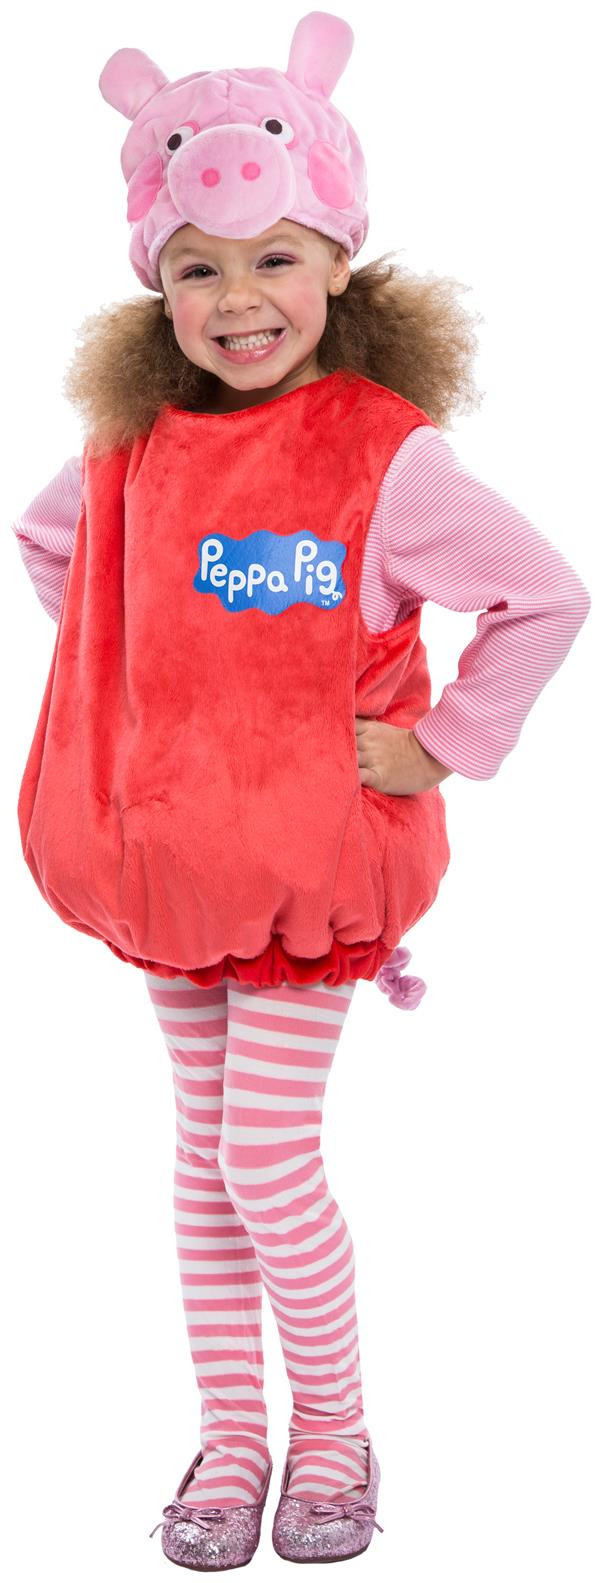 Best ideas about Peppa Pig Costume DIY . Save or Pin Peppa Pig Deluxe Toddler Costume PartyBell Now.